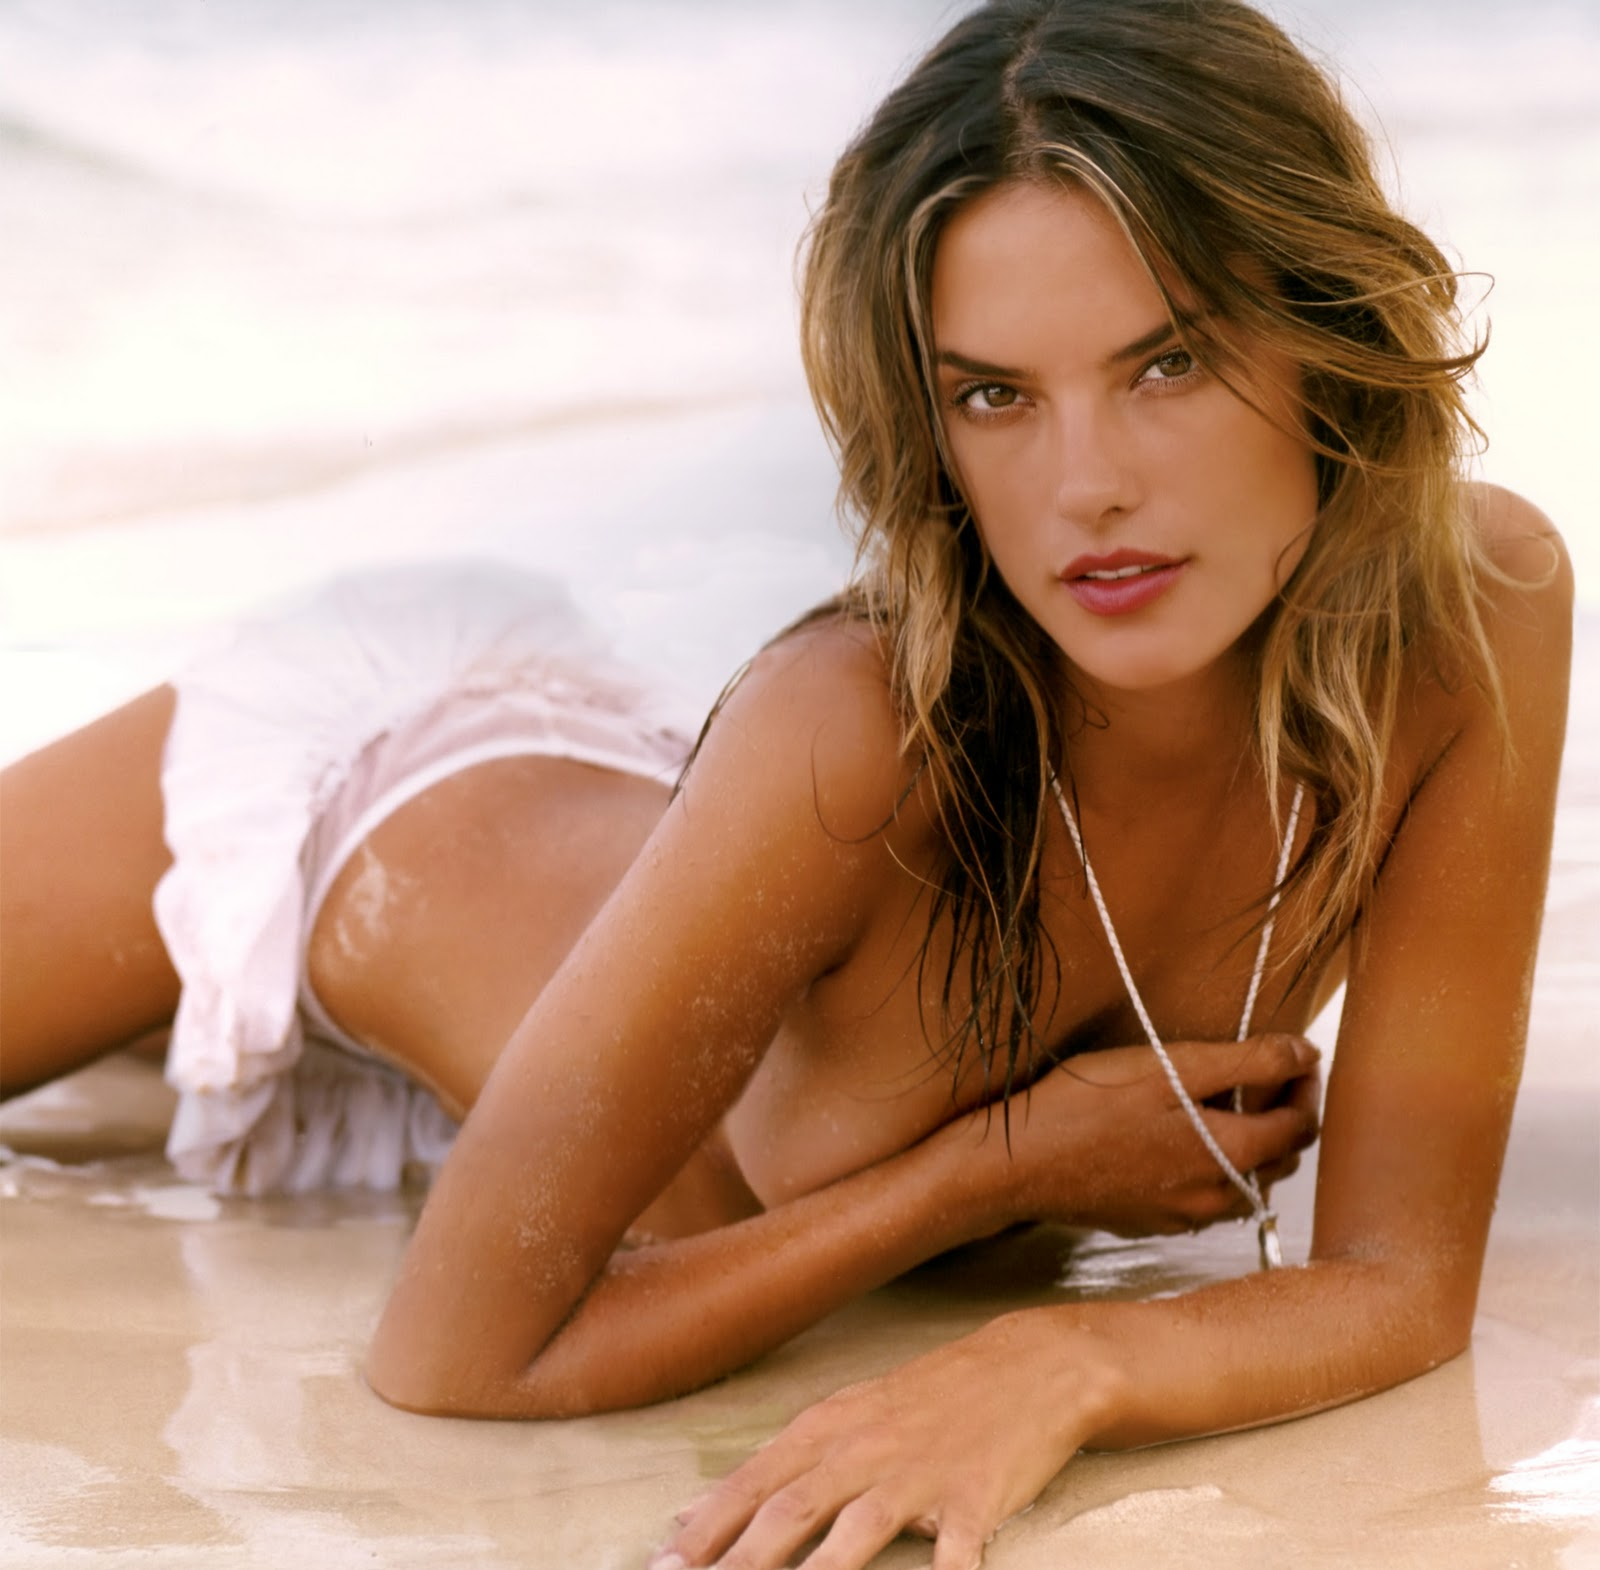 Alessandra ambrosio close ups apologise, but